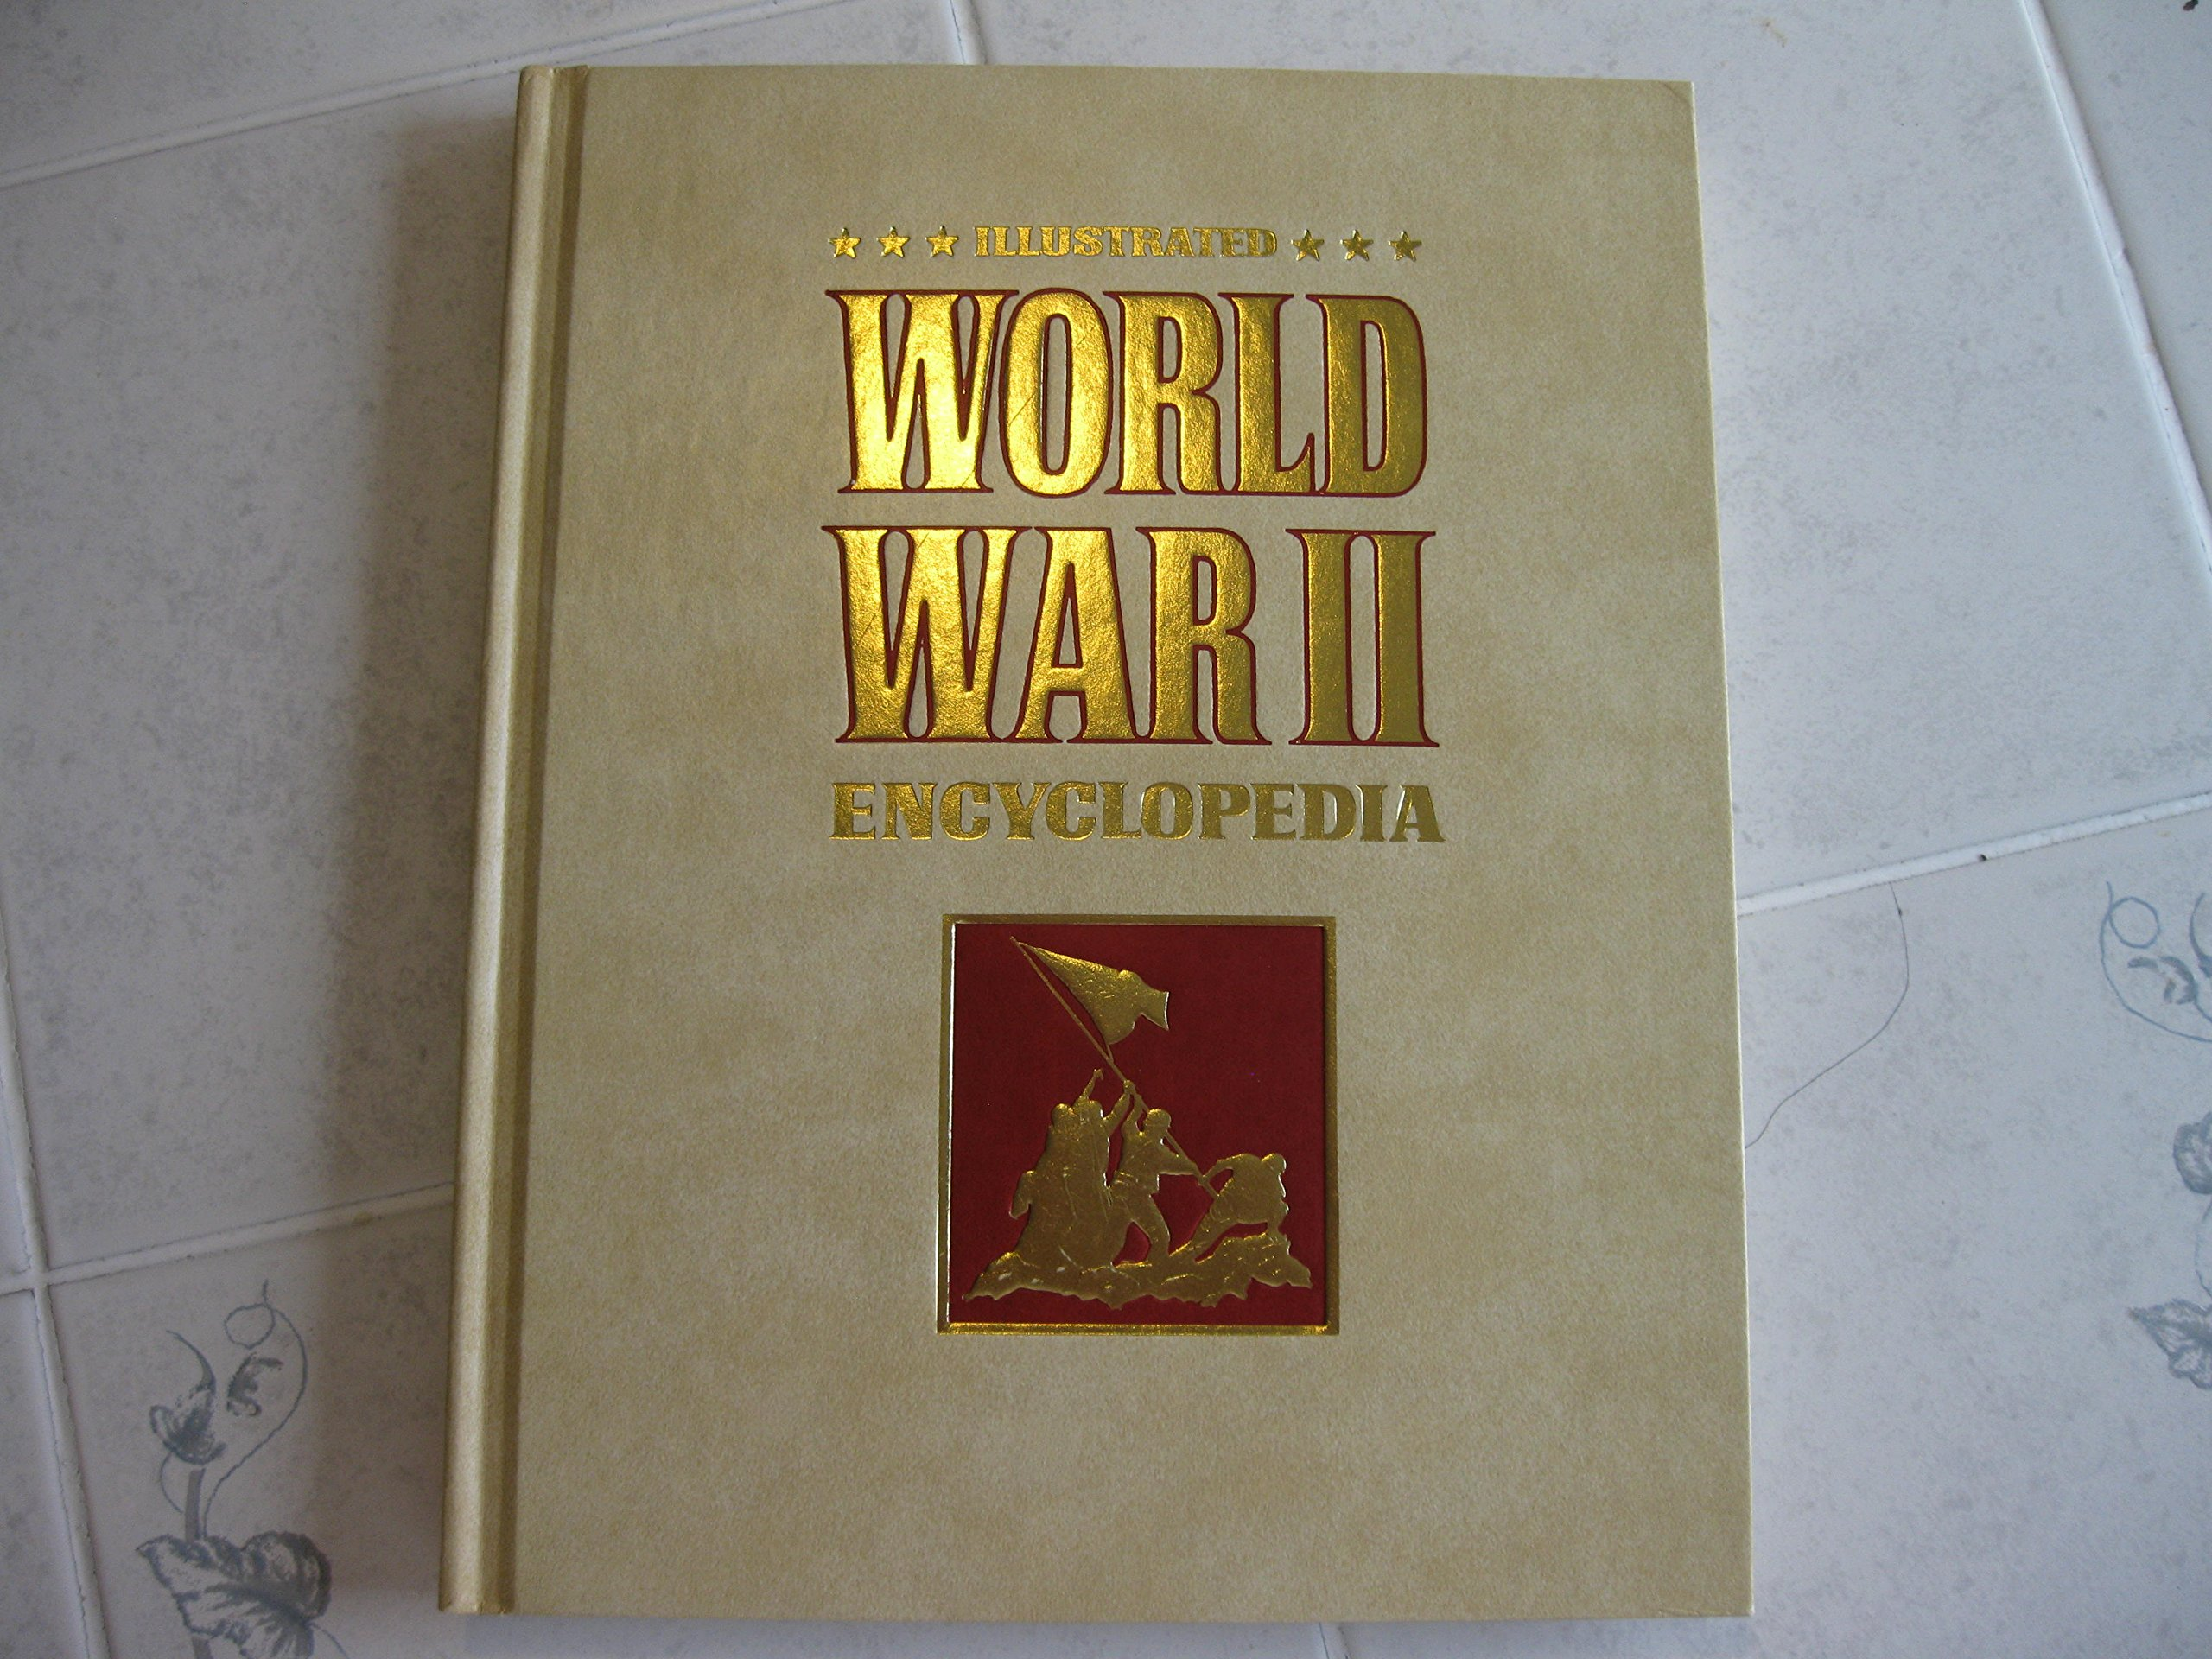 Illustrated World War II Encyclopedia (24 Volumes) by H. S. Stuttman